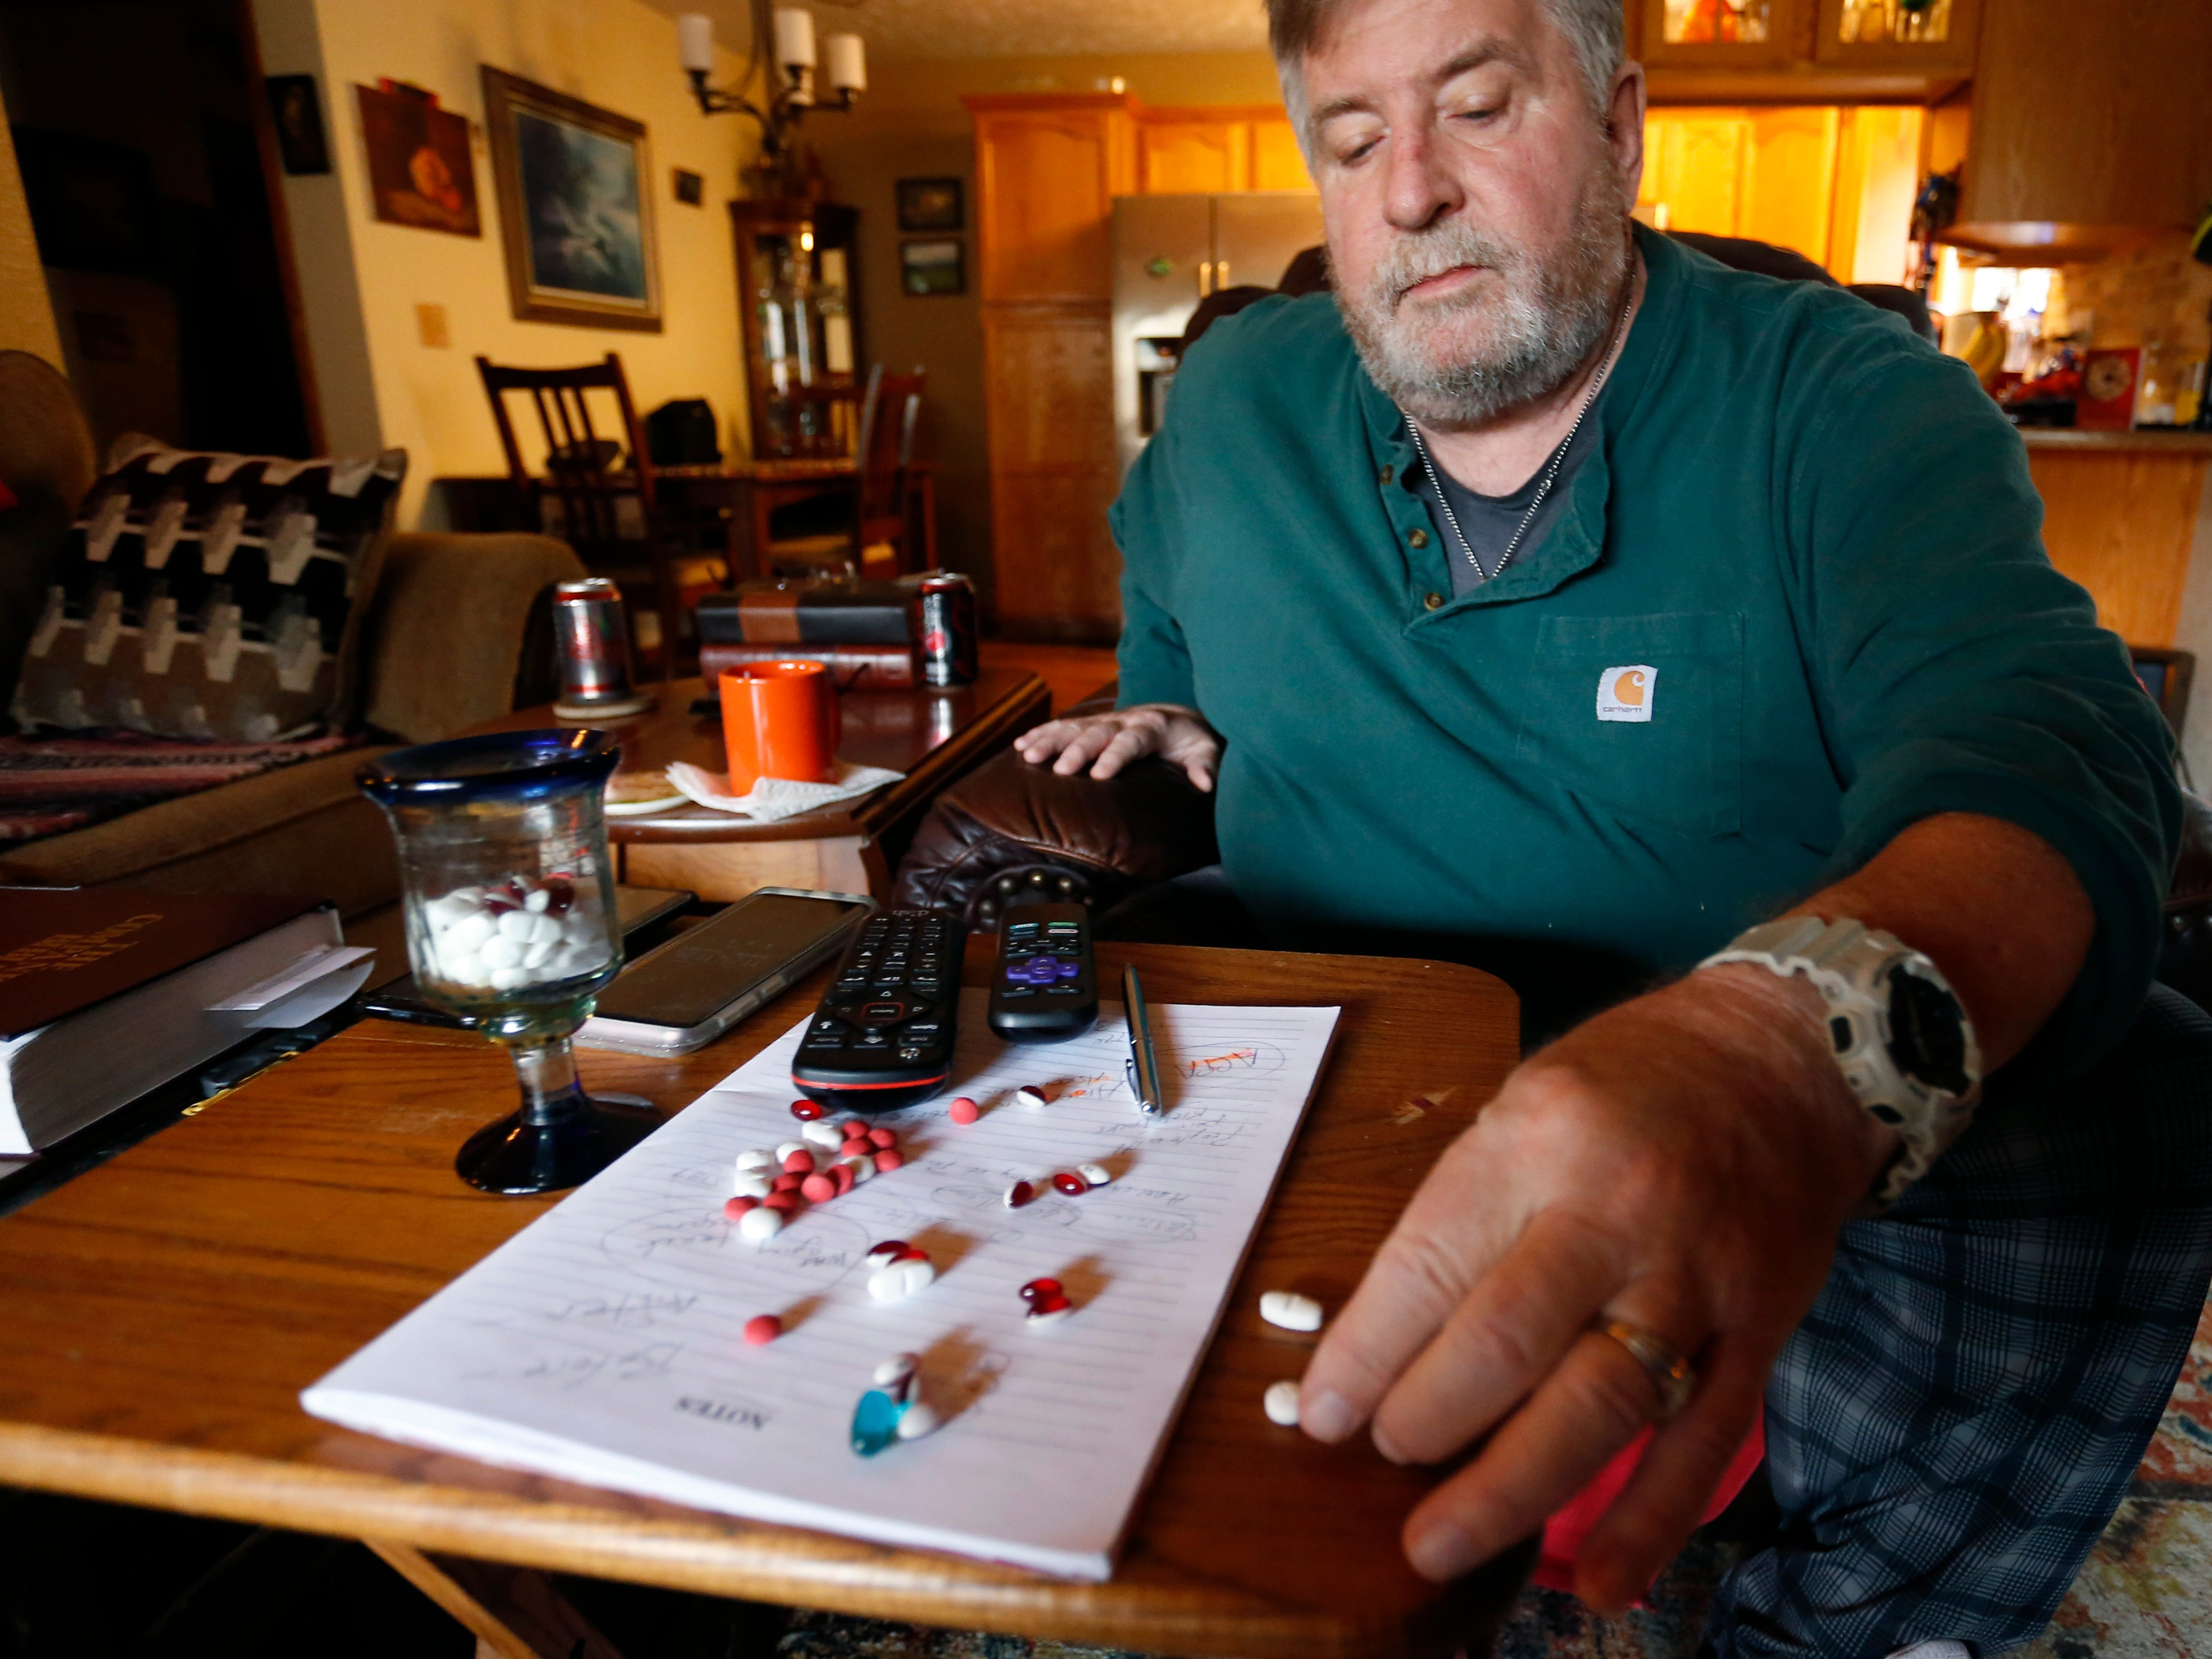 Scott Morgan shows the pills he uses to manage his intractable pain at his home in Branson West on Wednesday, Nov. 14, 2018. Morgan used to keep his pain at bay through powerful prescription opioids but because of the Department of Health and Human Services declared the national opioid crisis as a public health emergency he can no longer get the medicine at the strength and frequency he says he needs.